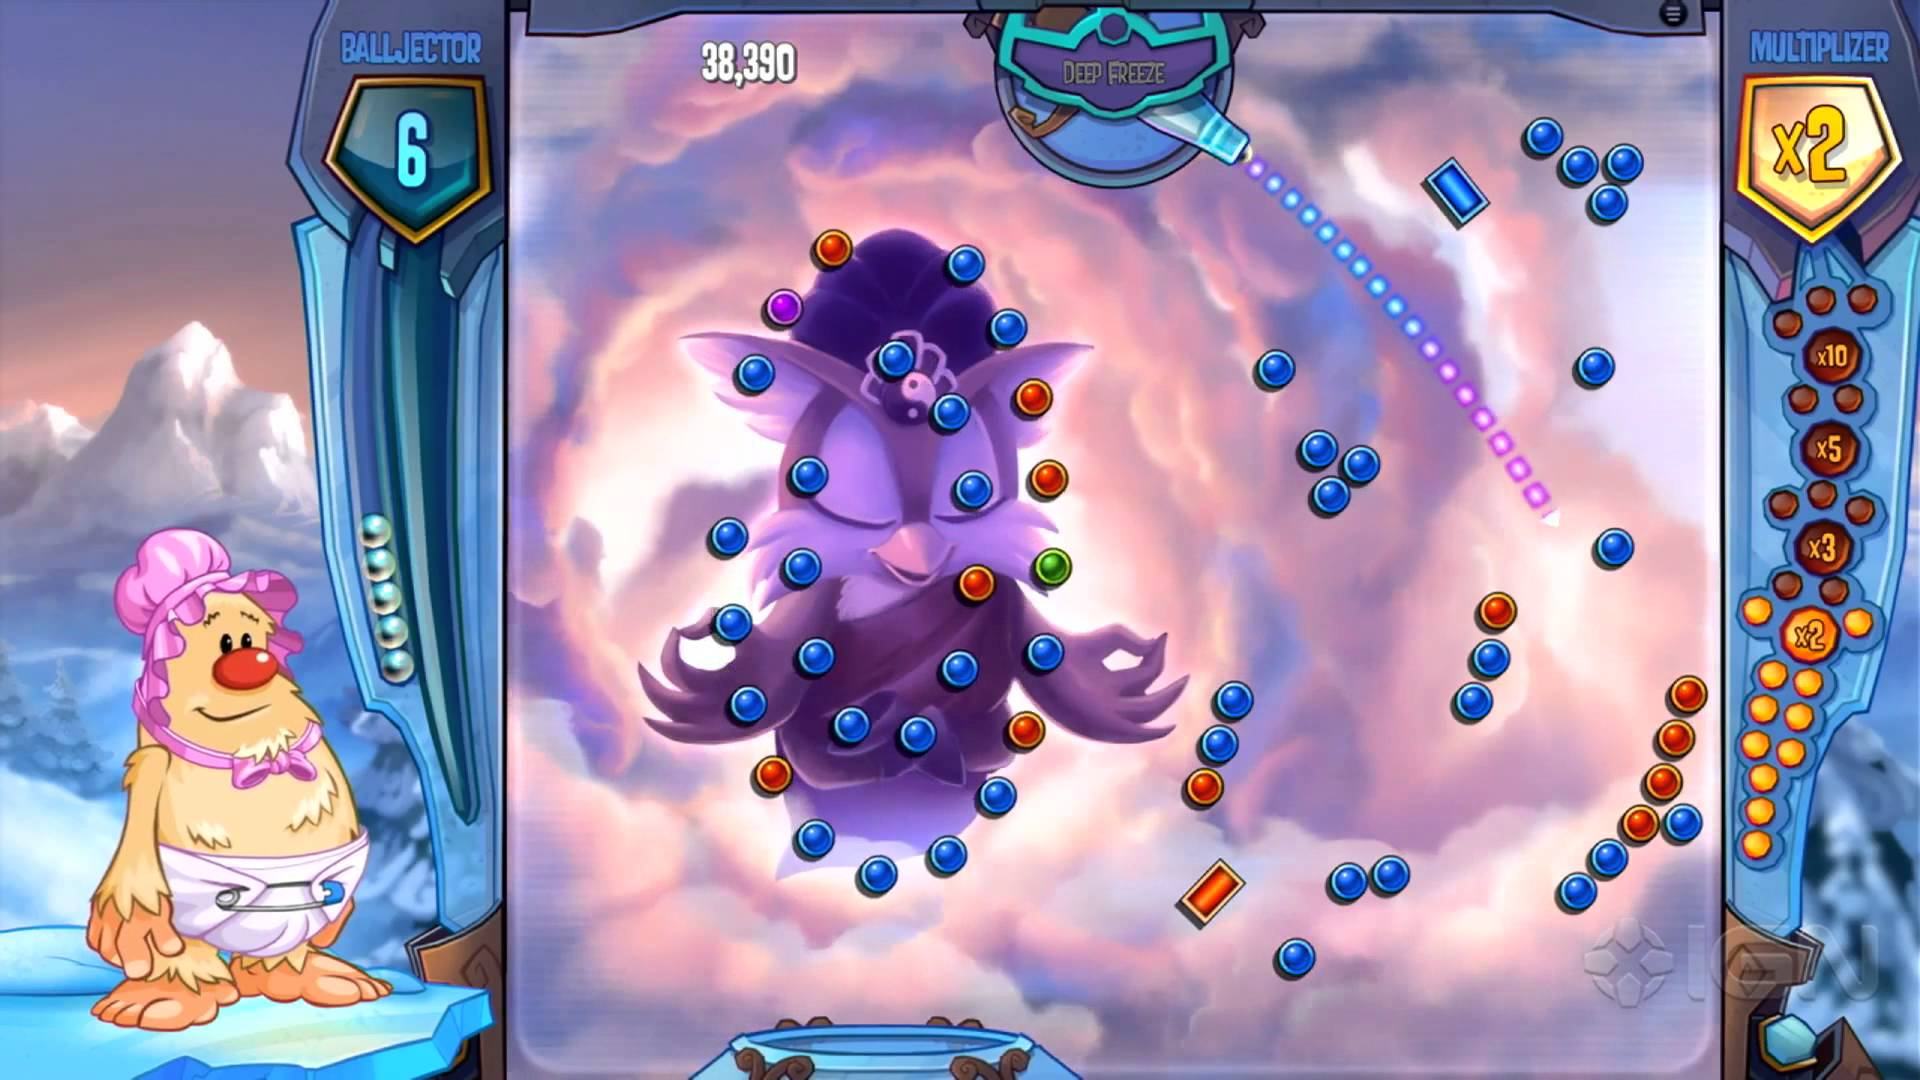 Peggle 2 Wallpapers hd